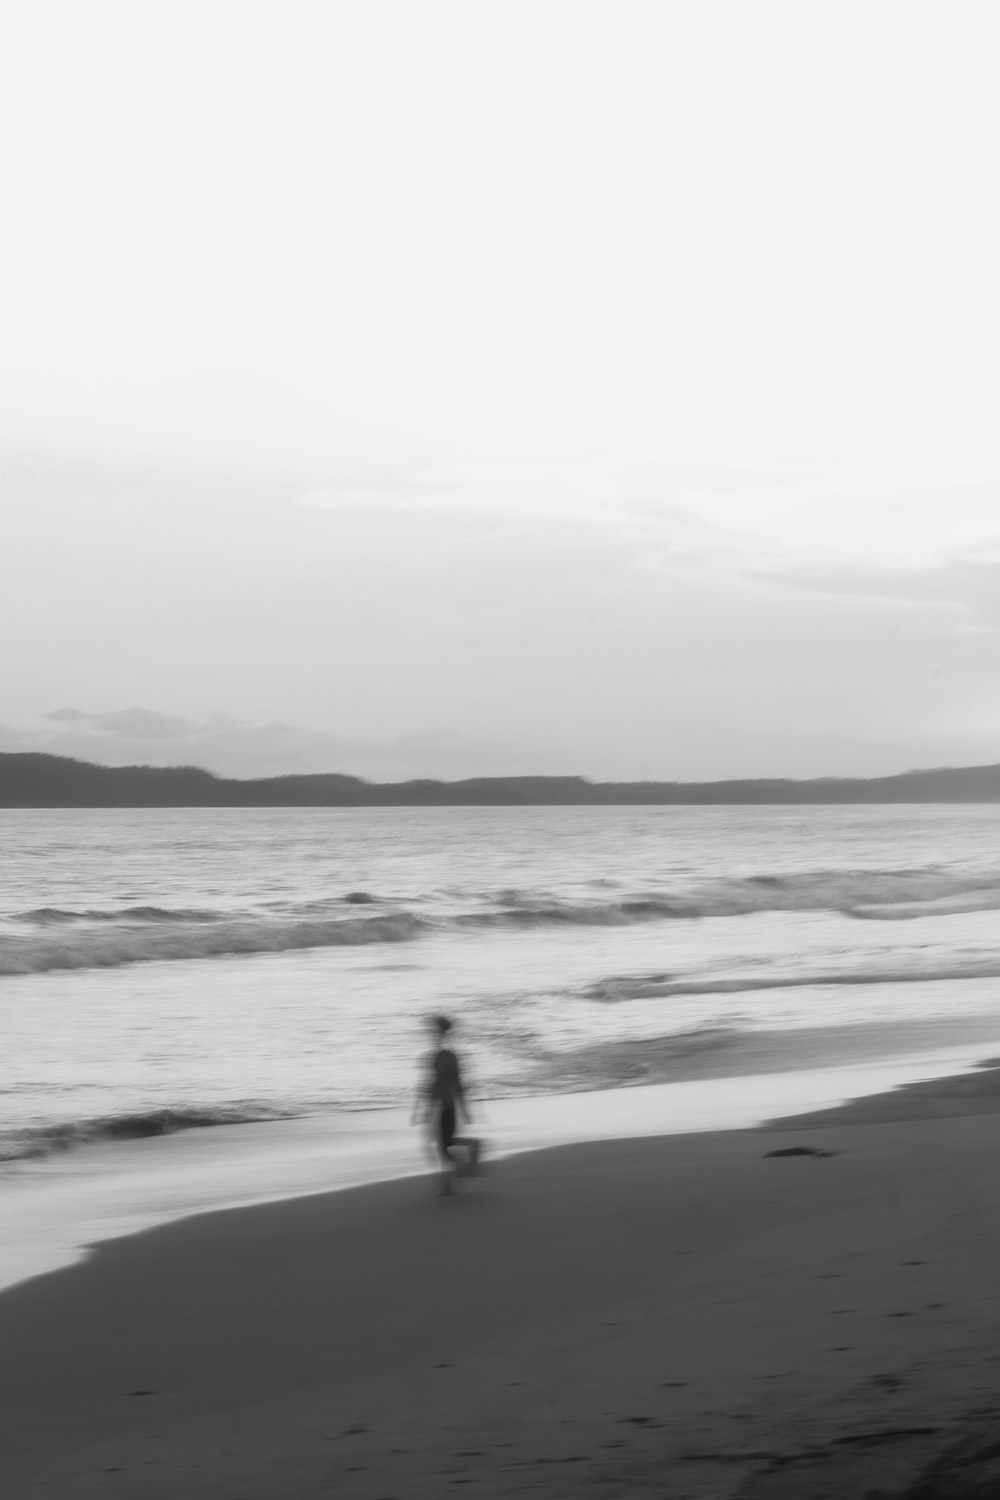 silhouette of 2 people walking on beach during daytime